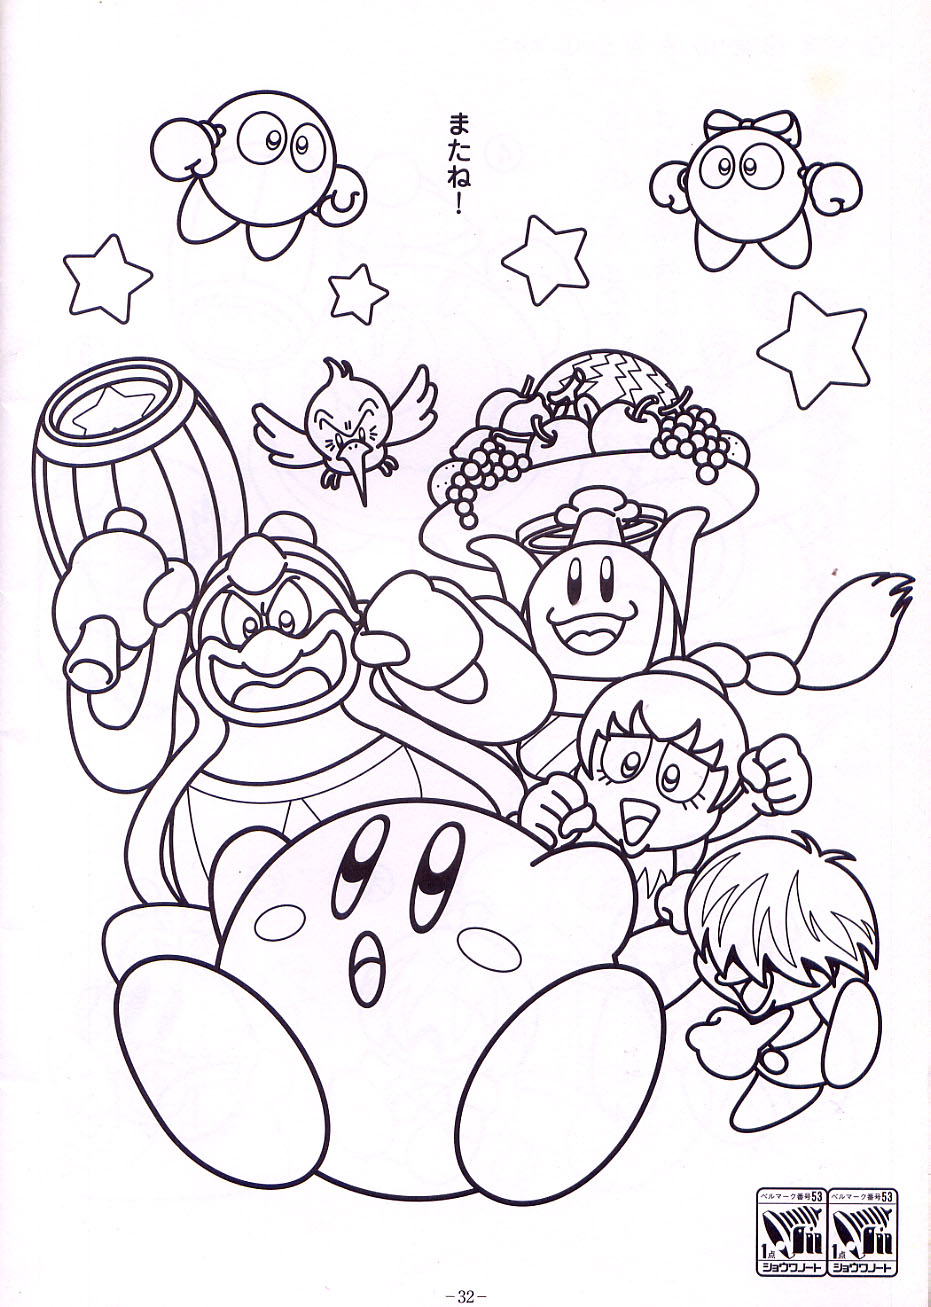 Image 32 run kirby wiki fandom powered by for Nintendo land coloring pages